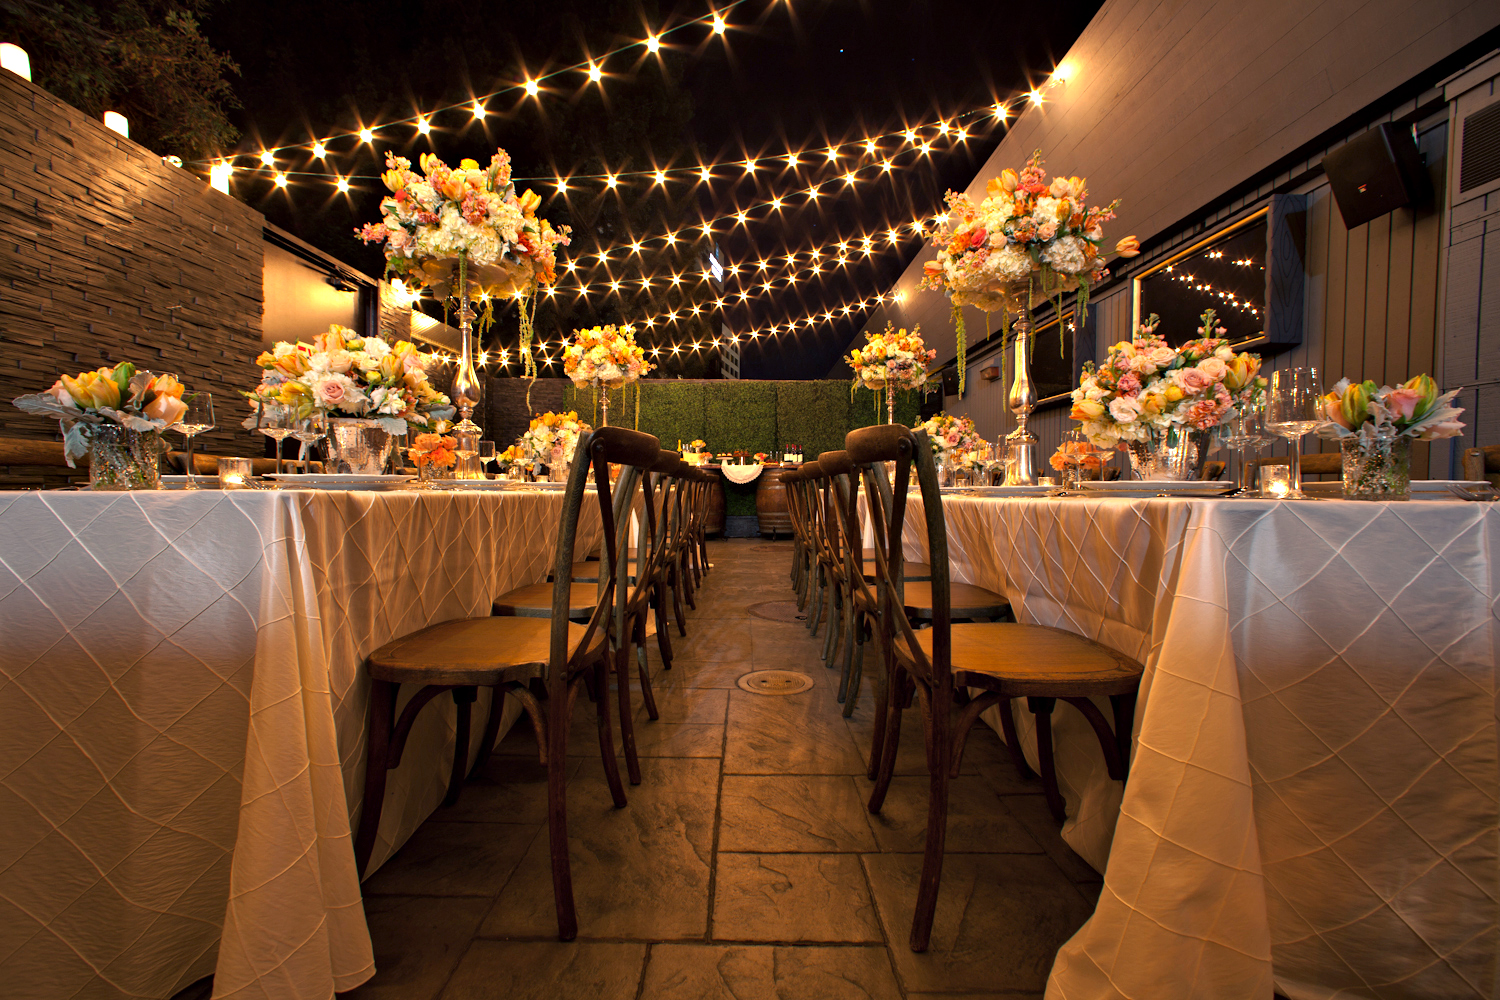 Stuart Rental Company Selected As Exclusive Party Rental